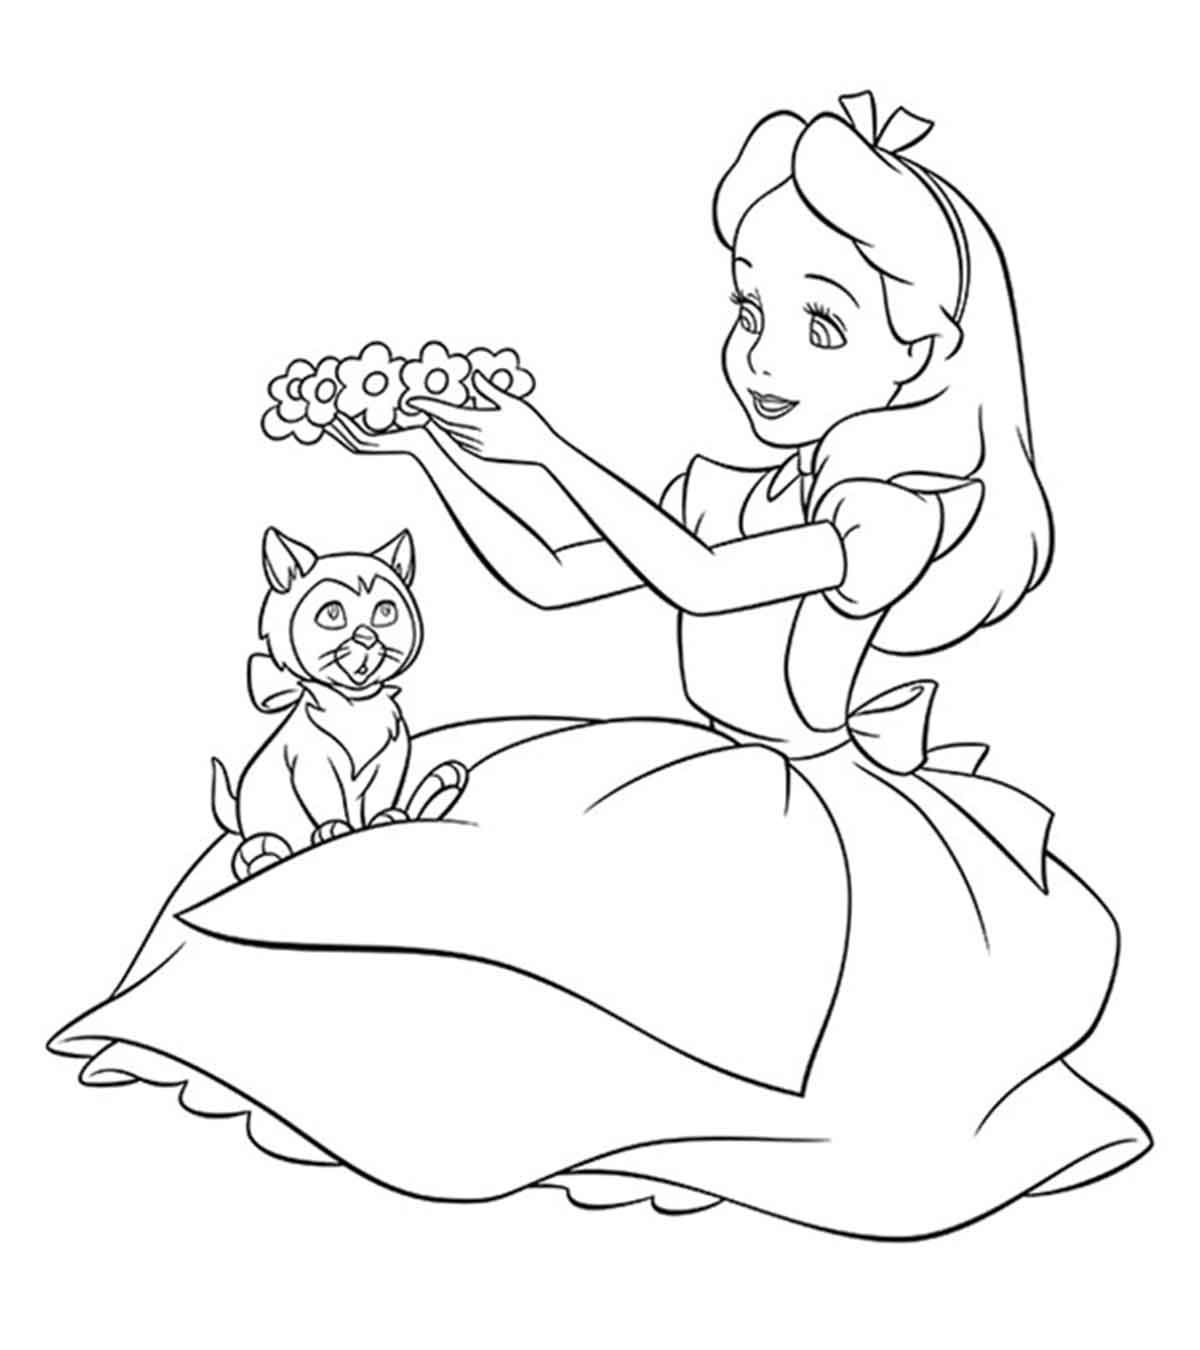 Disney Coloring Pages For Your Little Ones Disney